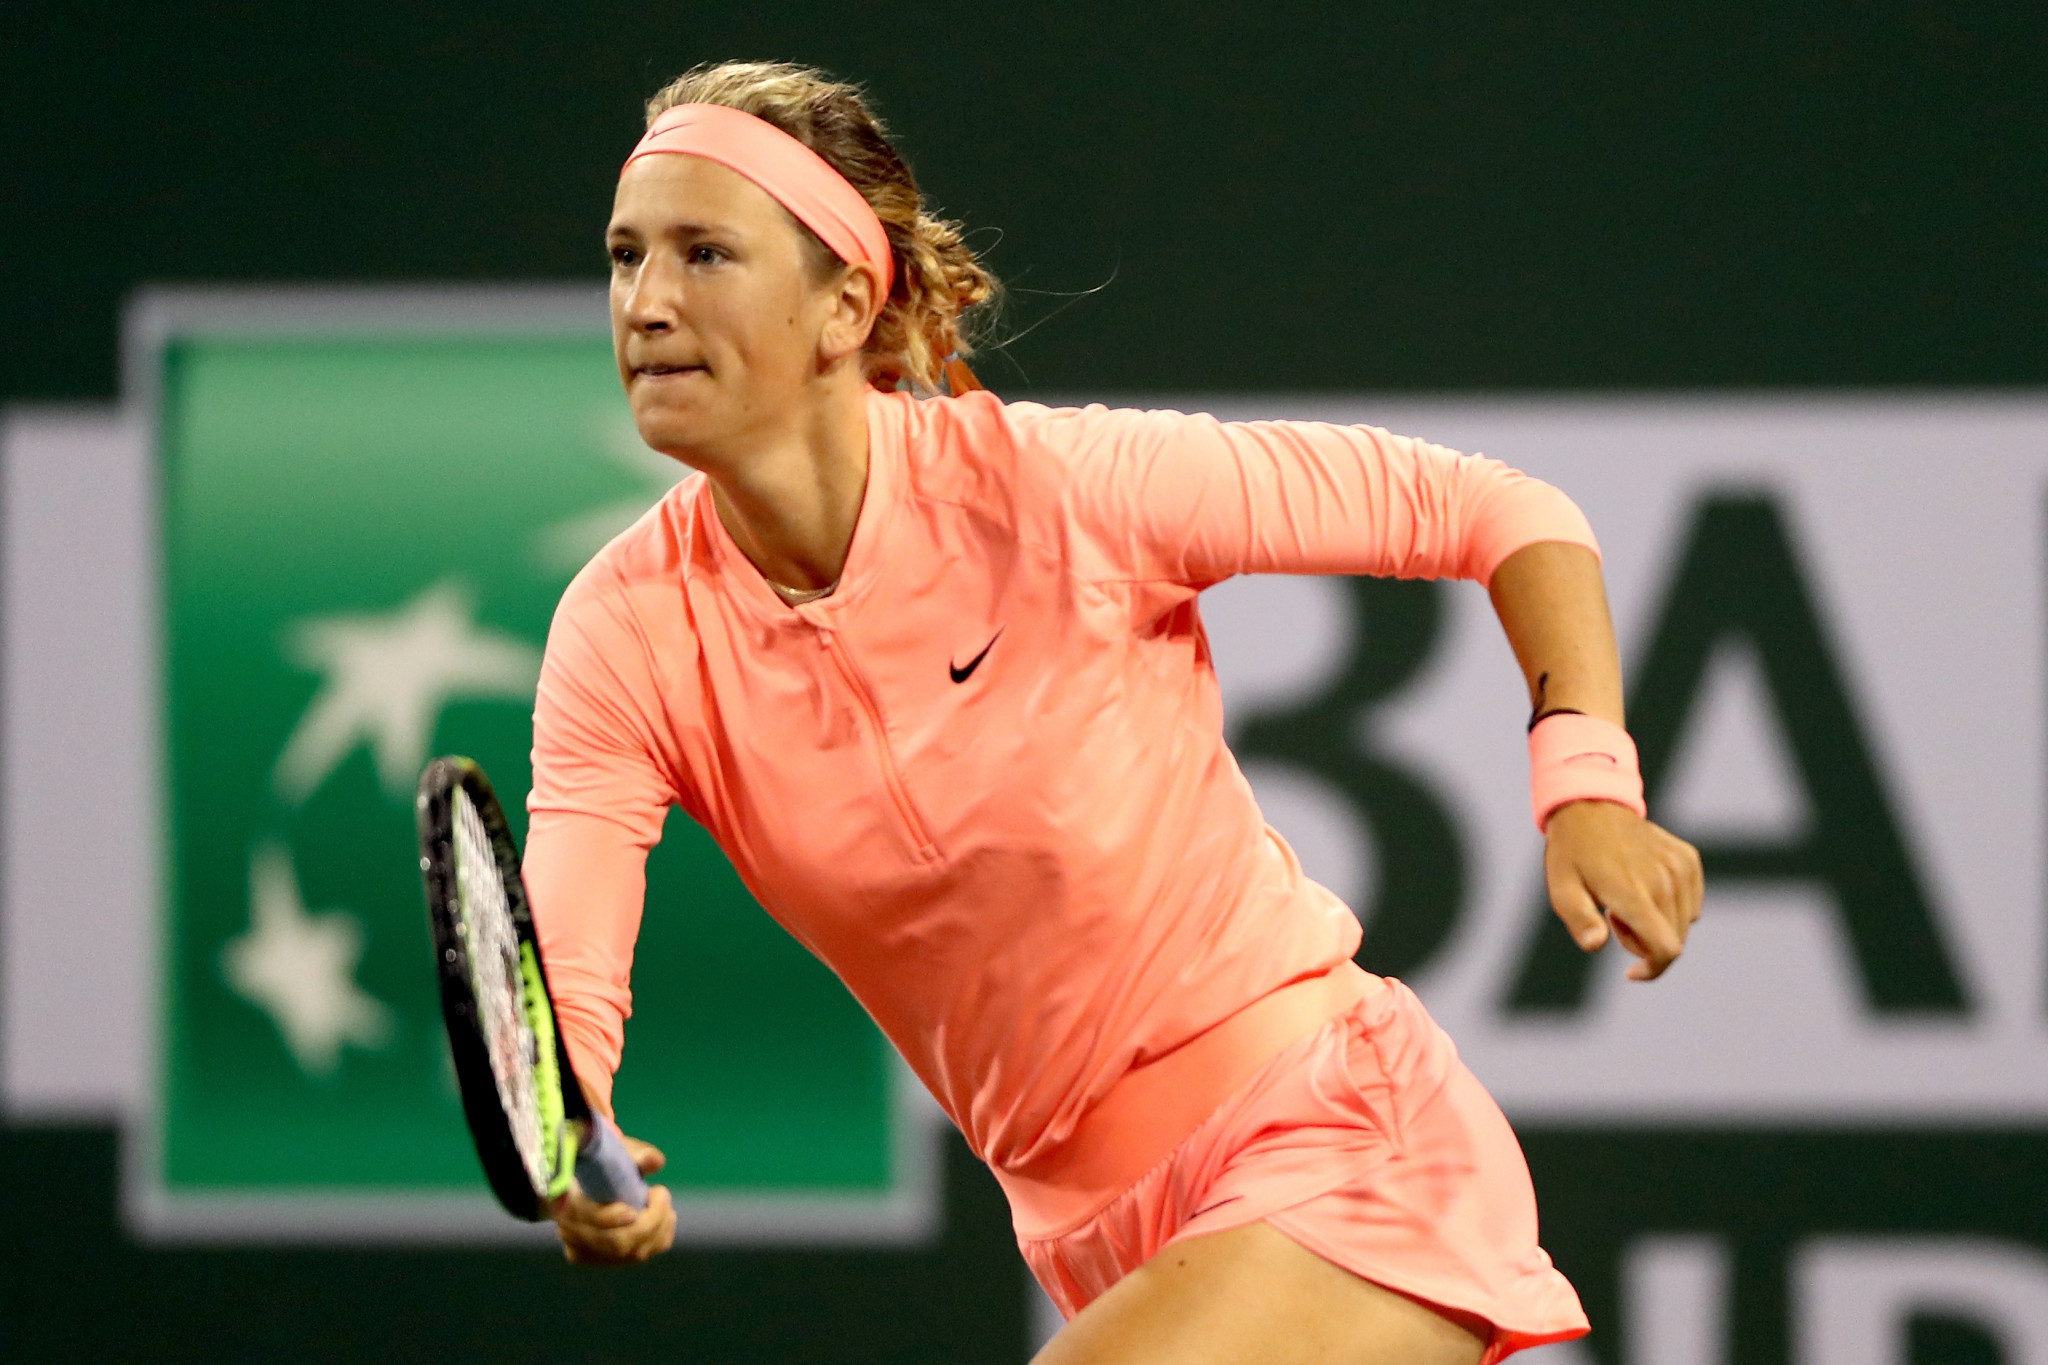 Victoria Azarenka also made a winning return to competition ©Getty Images